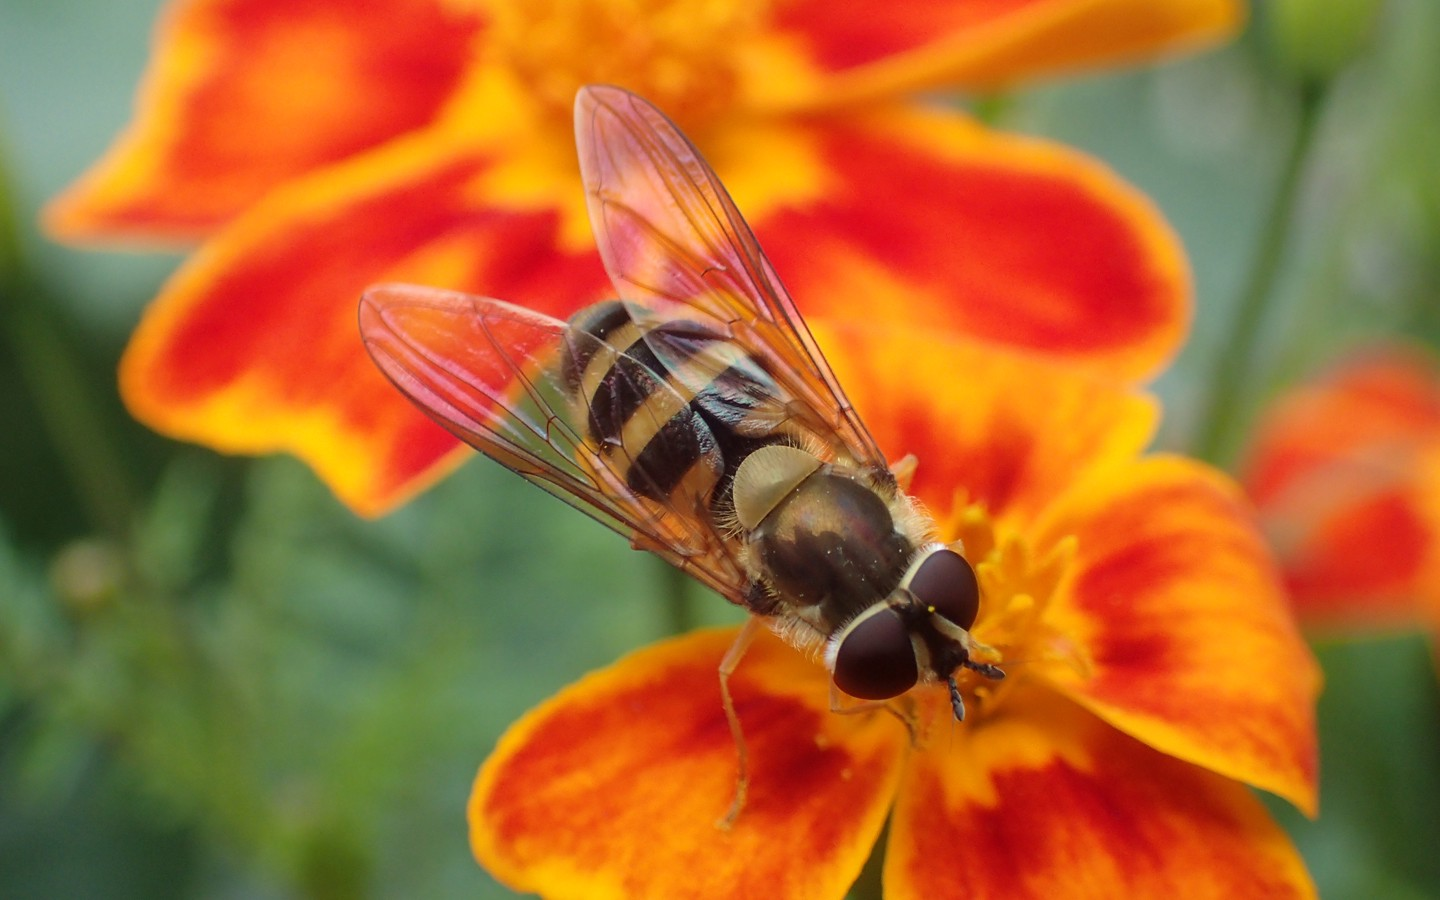 a bee look-alike fly on a red flower